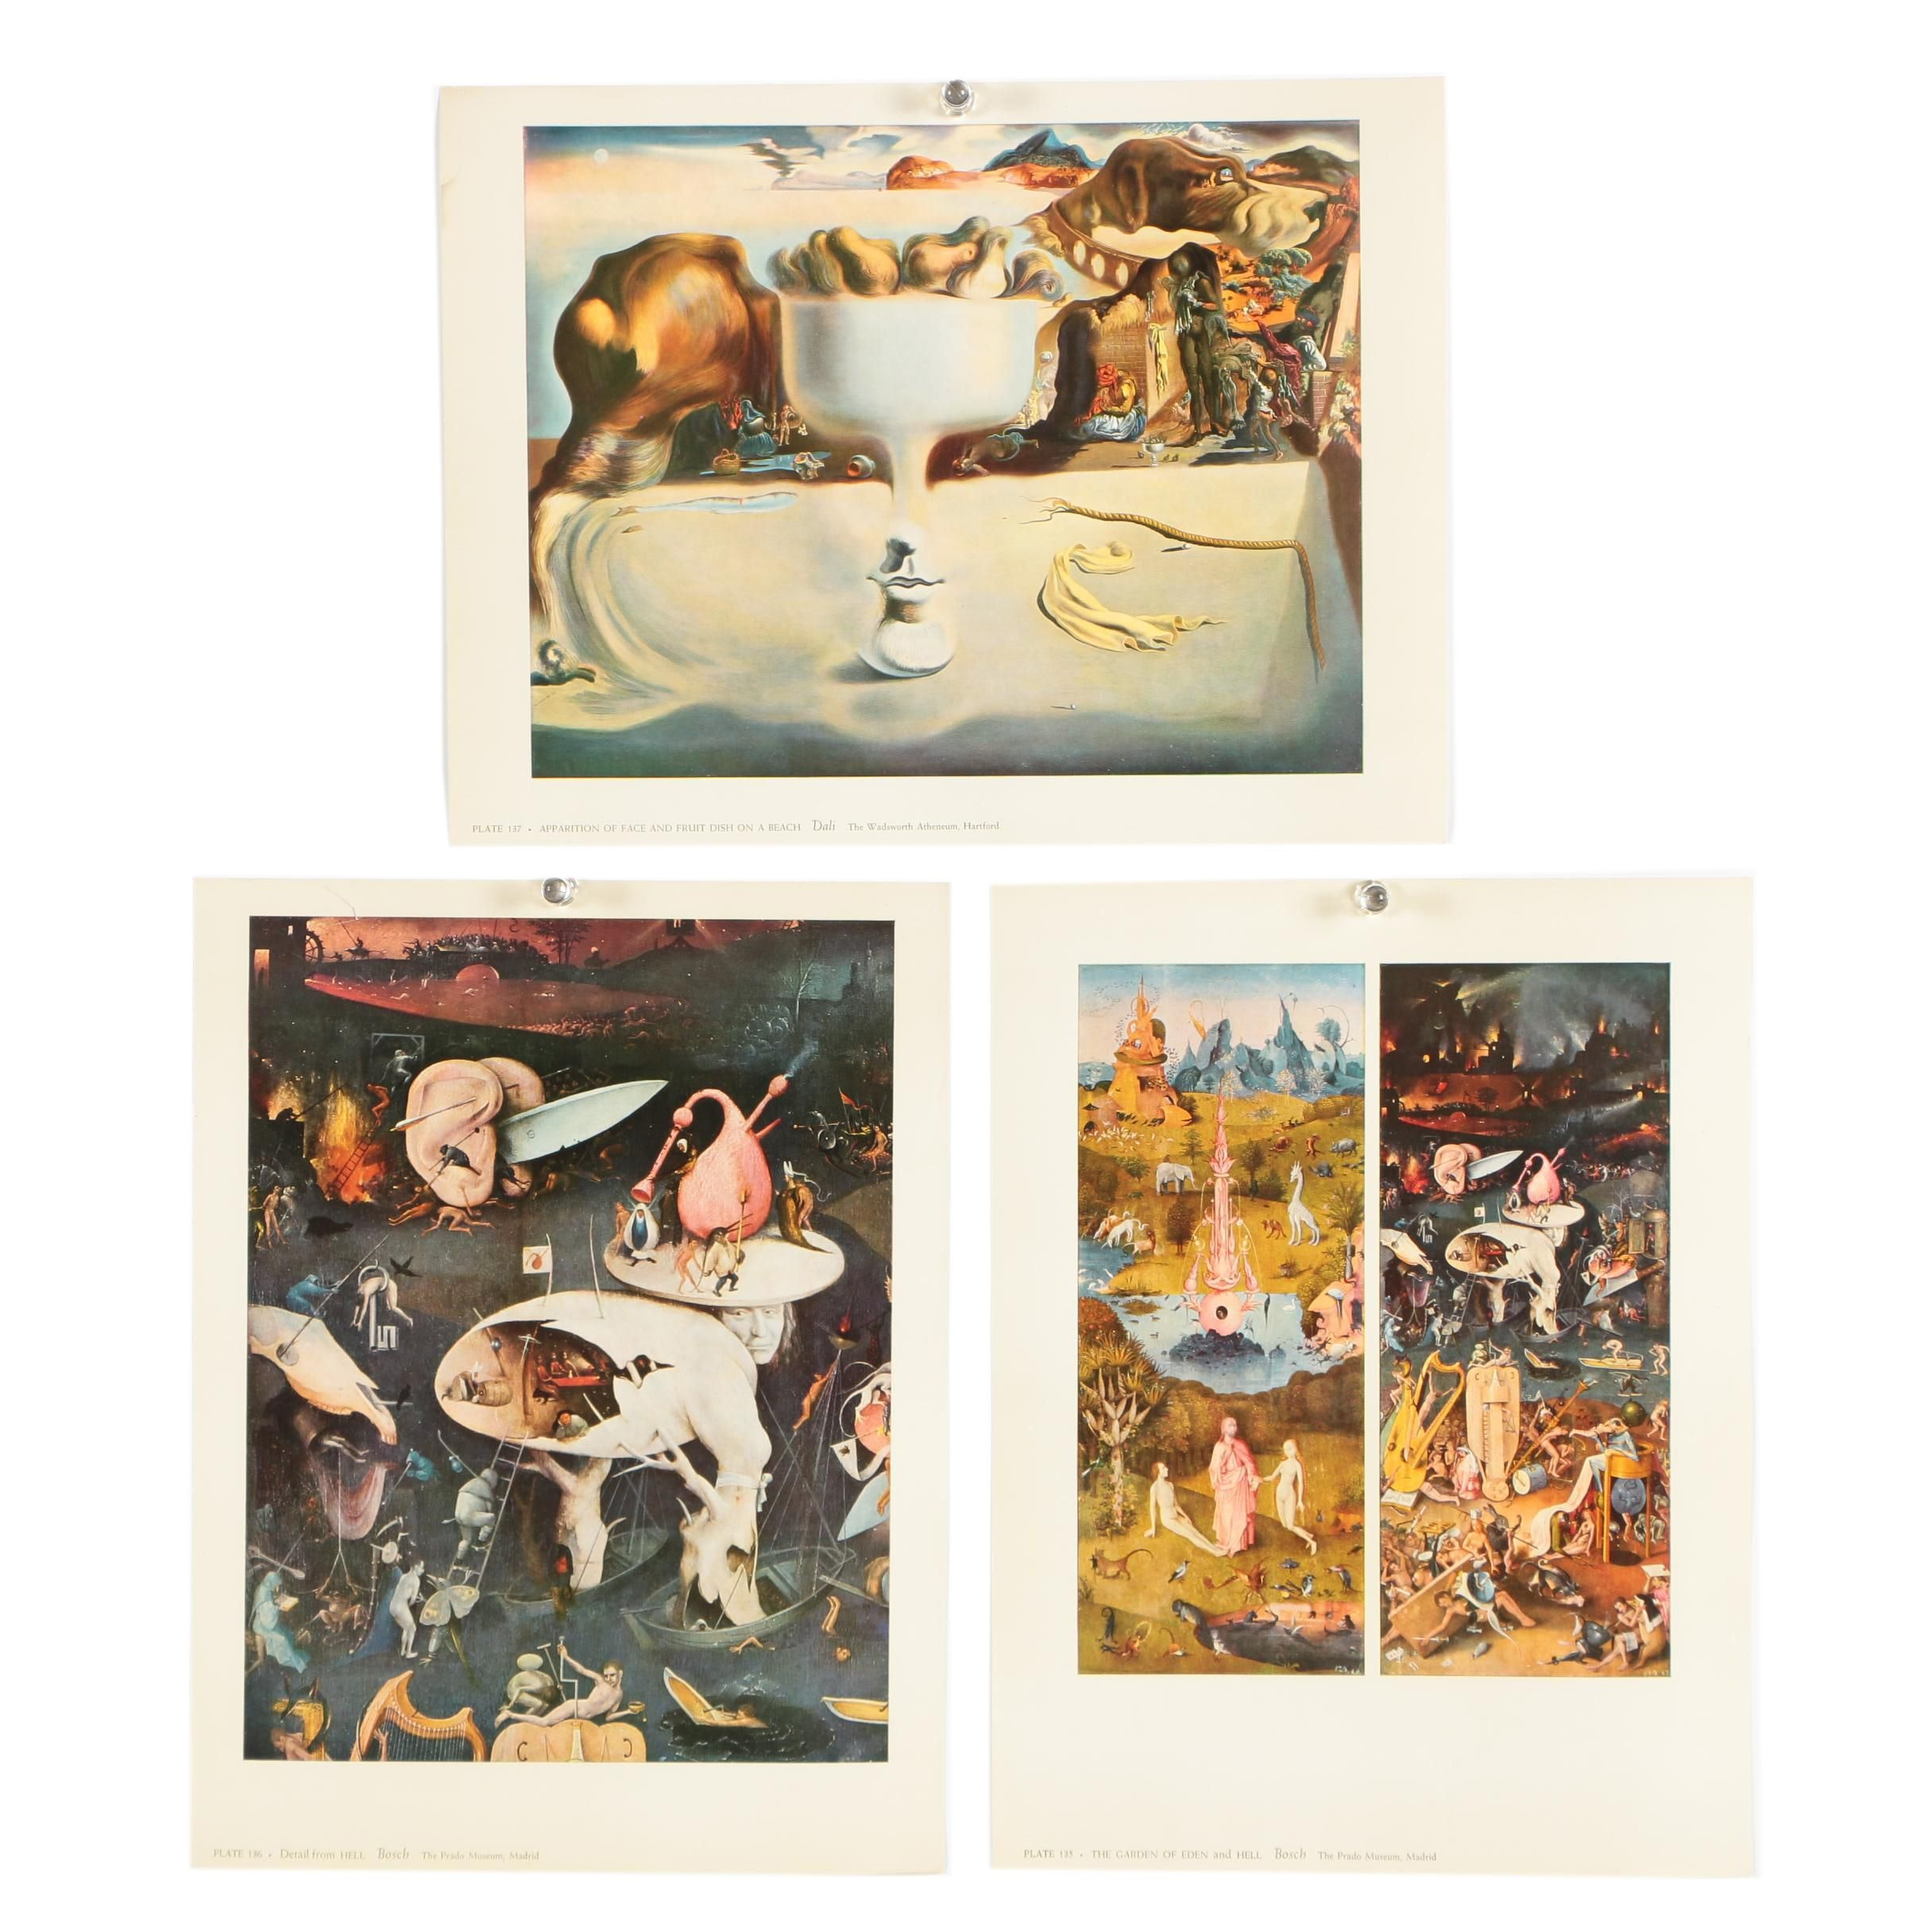 """Offset Lithographs After Bosch and Dali Featuring """"Hell"""""""